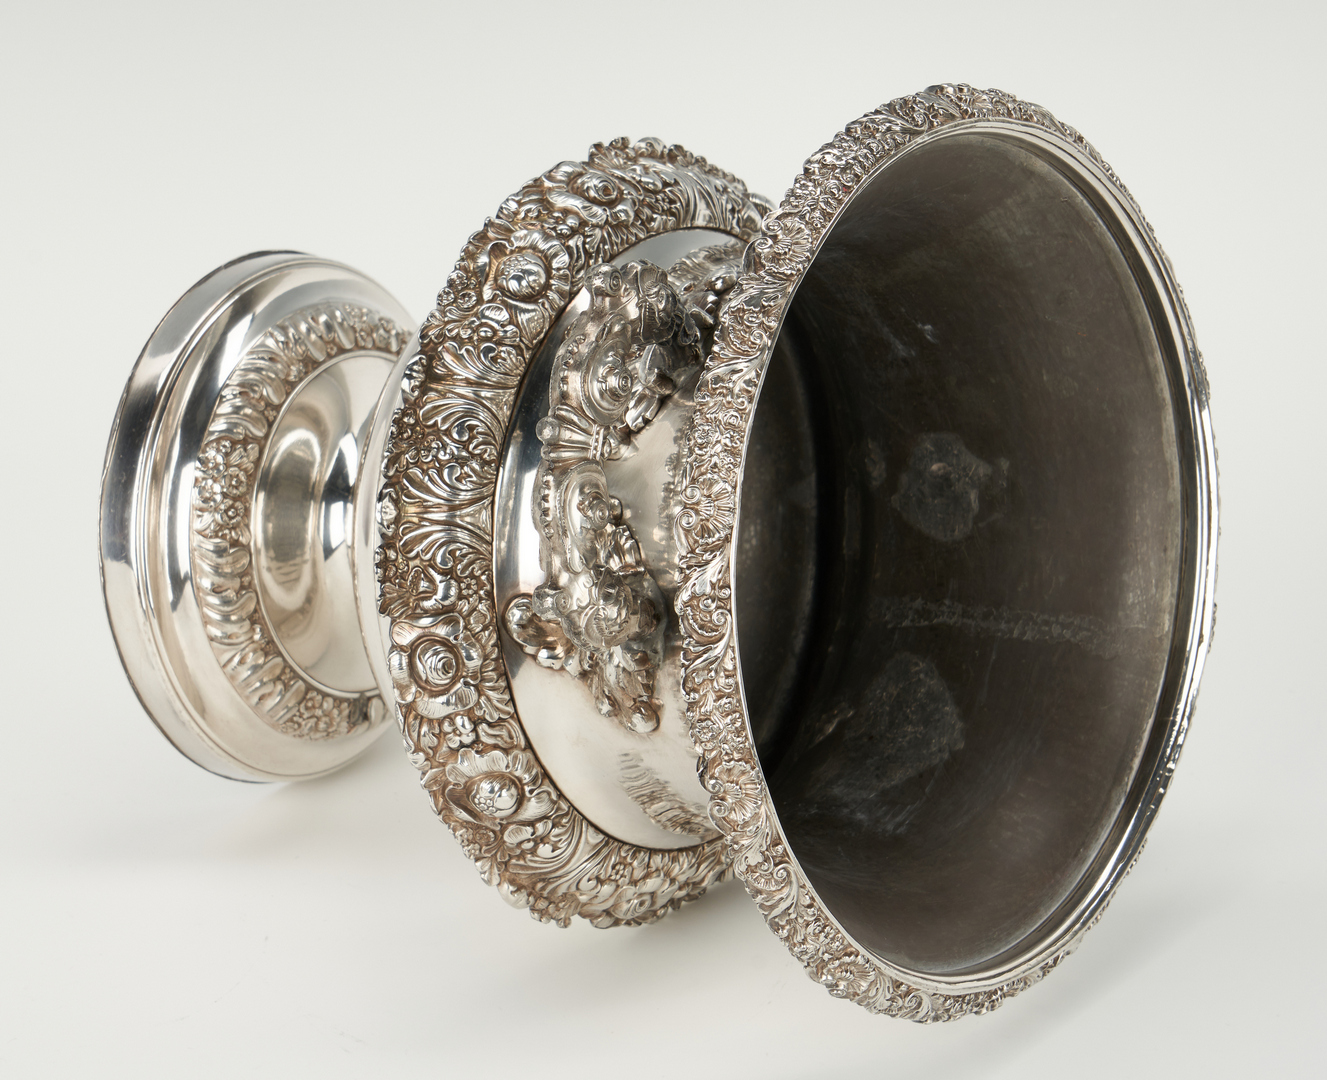 Lot 90: Silver Marrow Scoop and Old Sheffield Wine Cooler